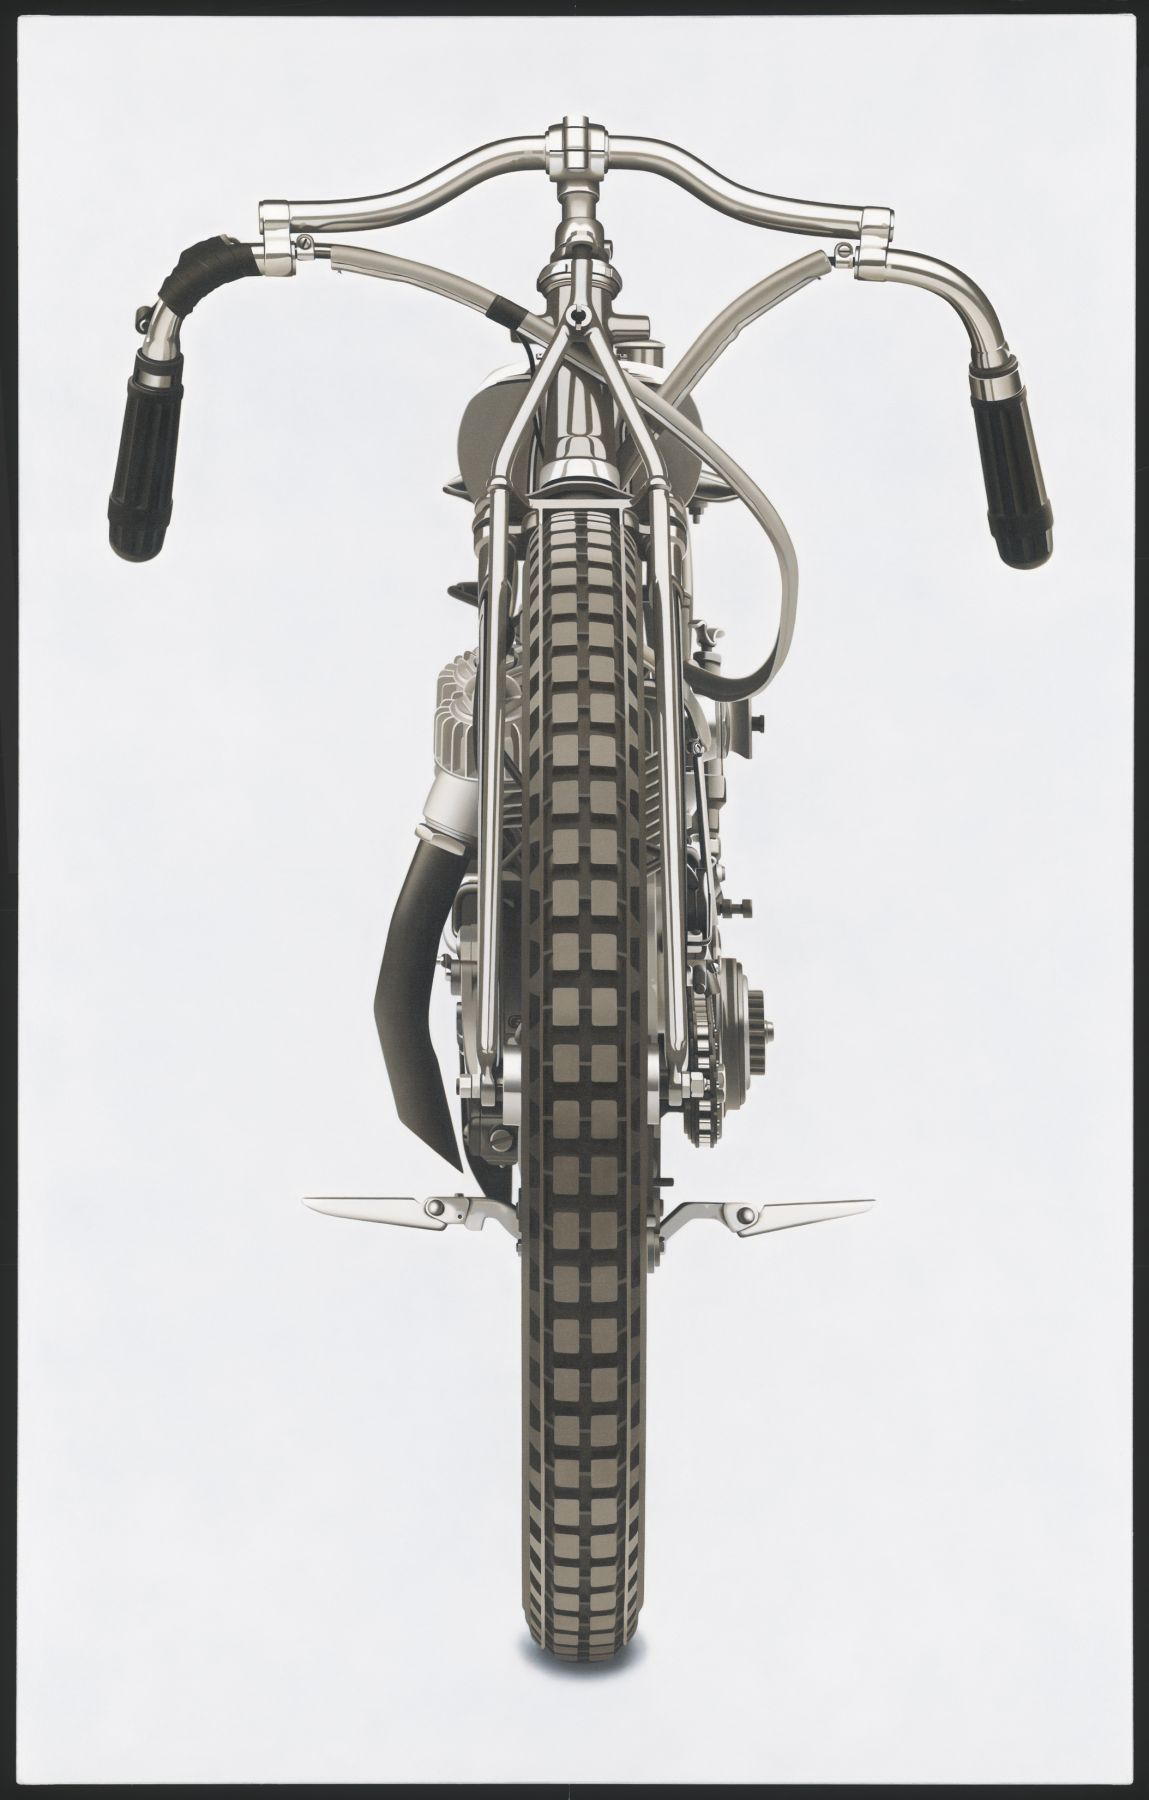 William Fisk, Untitled No. 3 (from the Motorcycle Paintings), 2010, oil on canvas, 76 x 48 inches